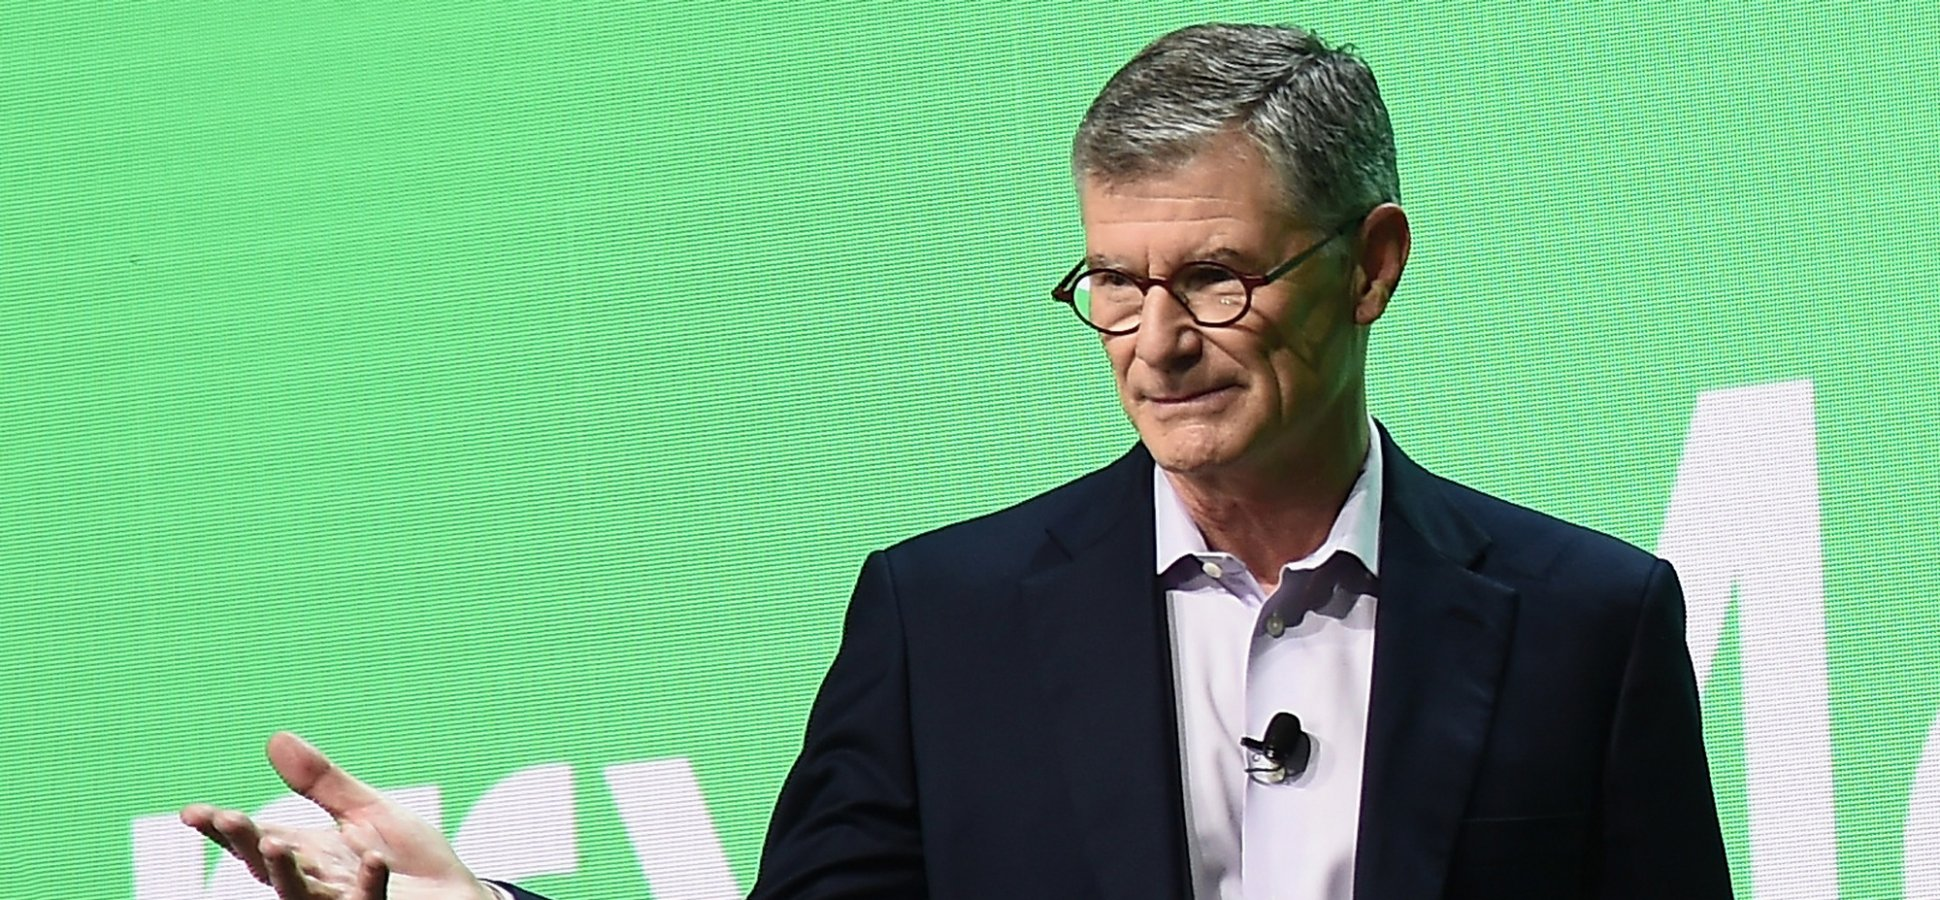 Spotify's CFO: Traditional IPOs Are 'Moronic'